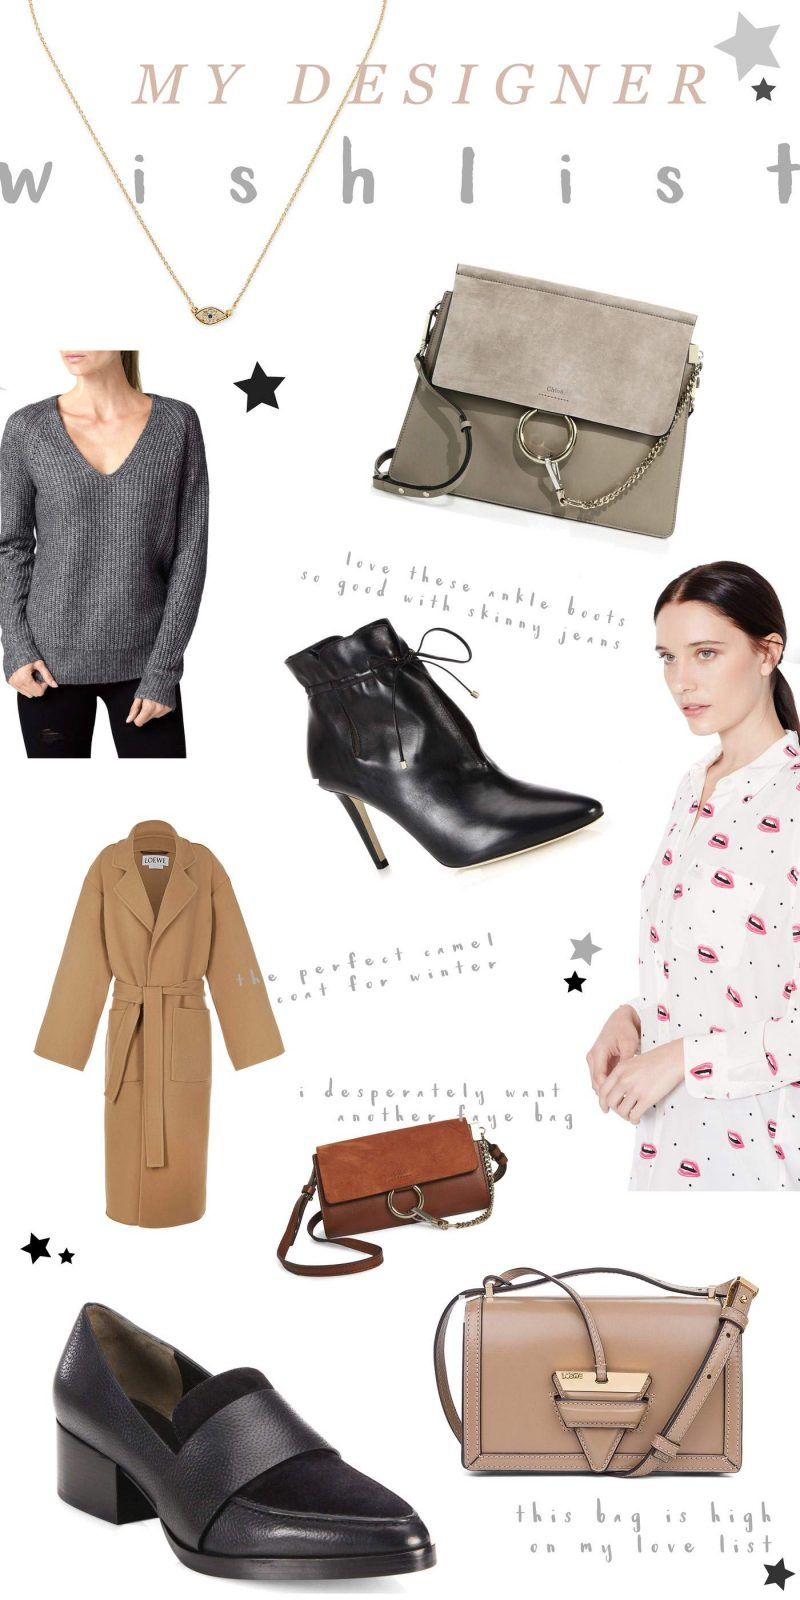 My Designer Wishlist with Orchard Mile